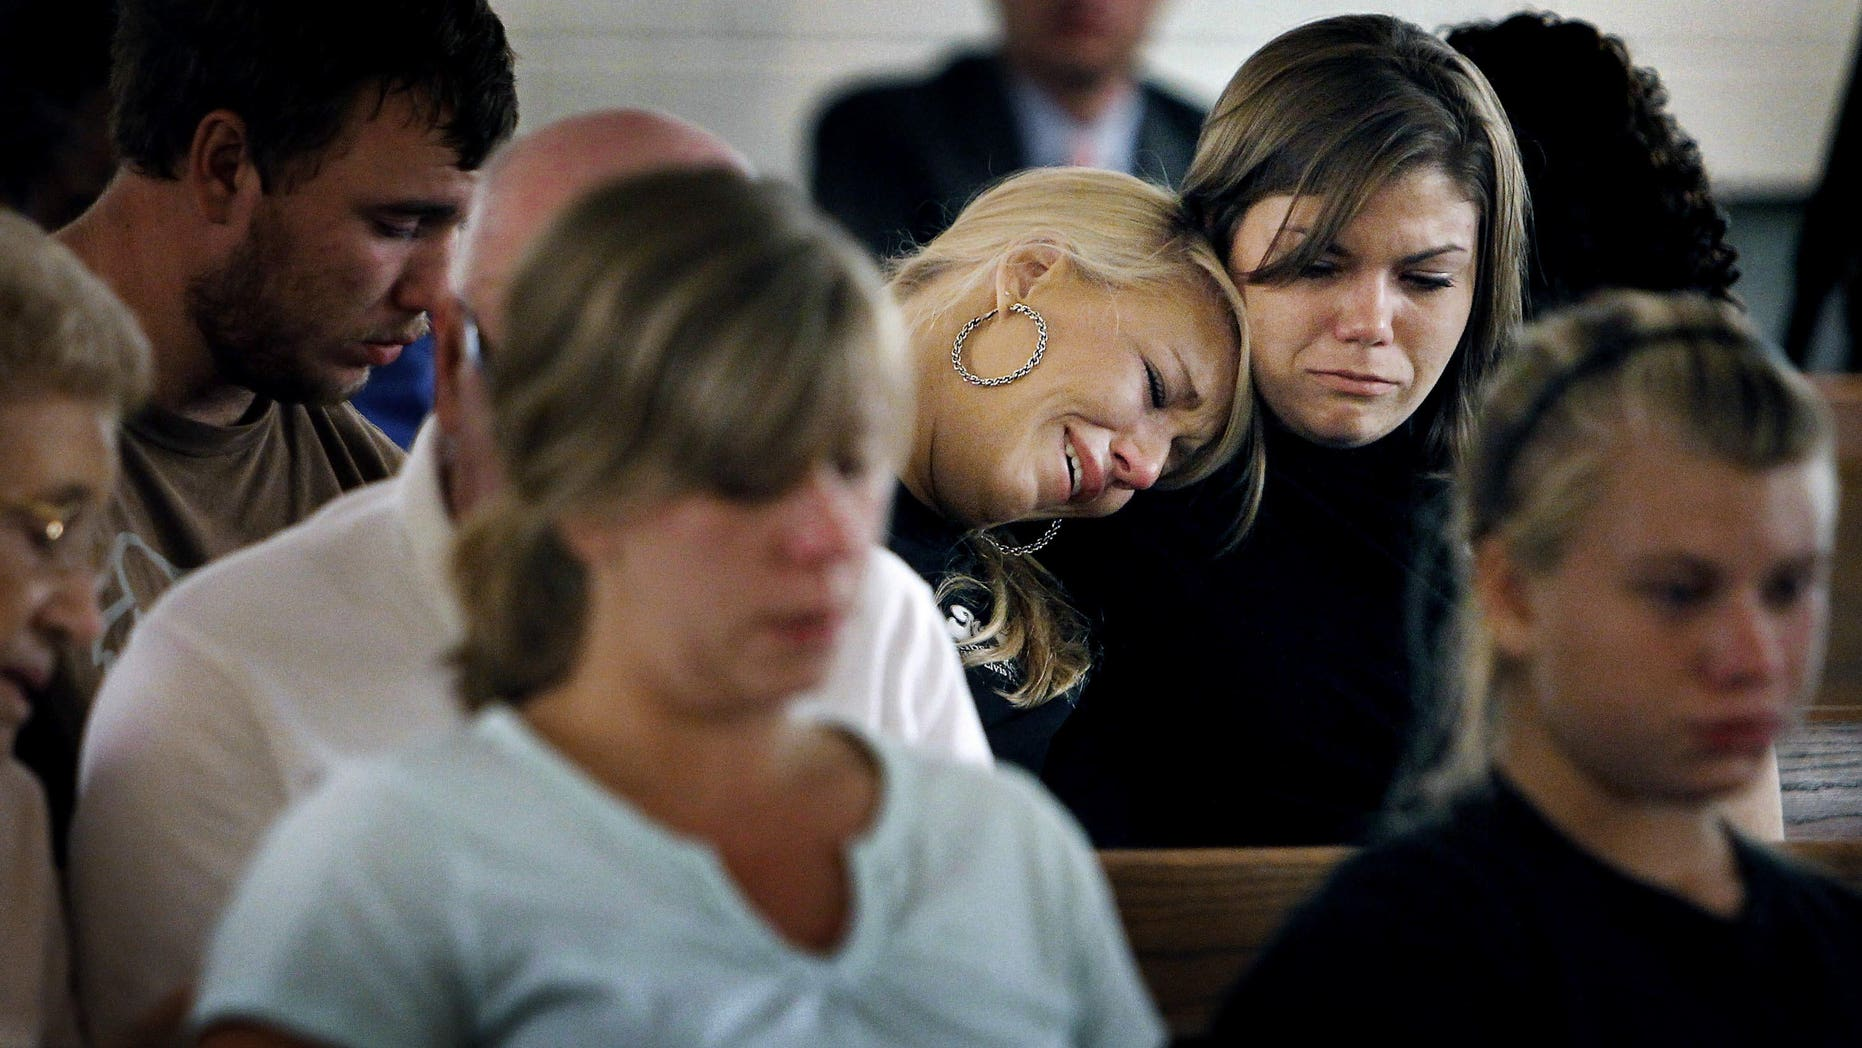 August 10: Sisters Brittany (left) and Kristen Bridges, both former students at Memphis Junior Academy, weep during an impromptu prayer vigil for slain principal Suzette York, who was killed in one of the school's classrooms in Memphis, Tennessee. The vigil held at Mullins United Methodist Church was attended by several former students and York family friends. Eduardo Marmolejo, a 17-year-old male student, has been charged with York's murder.